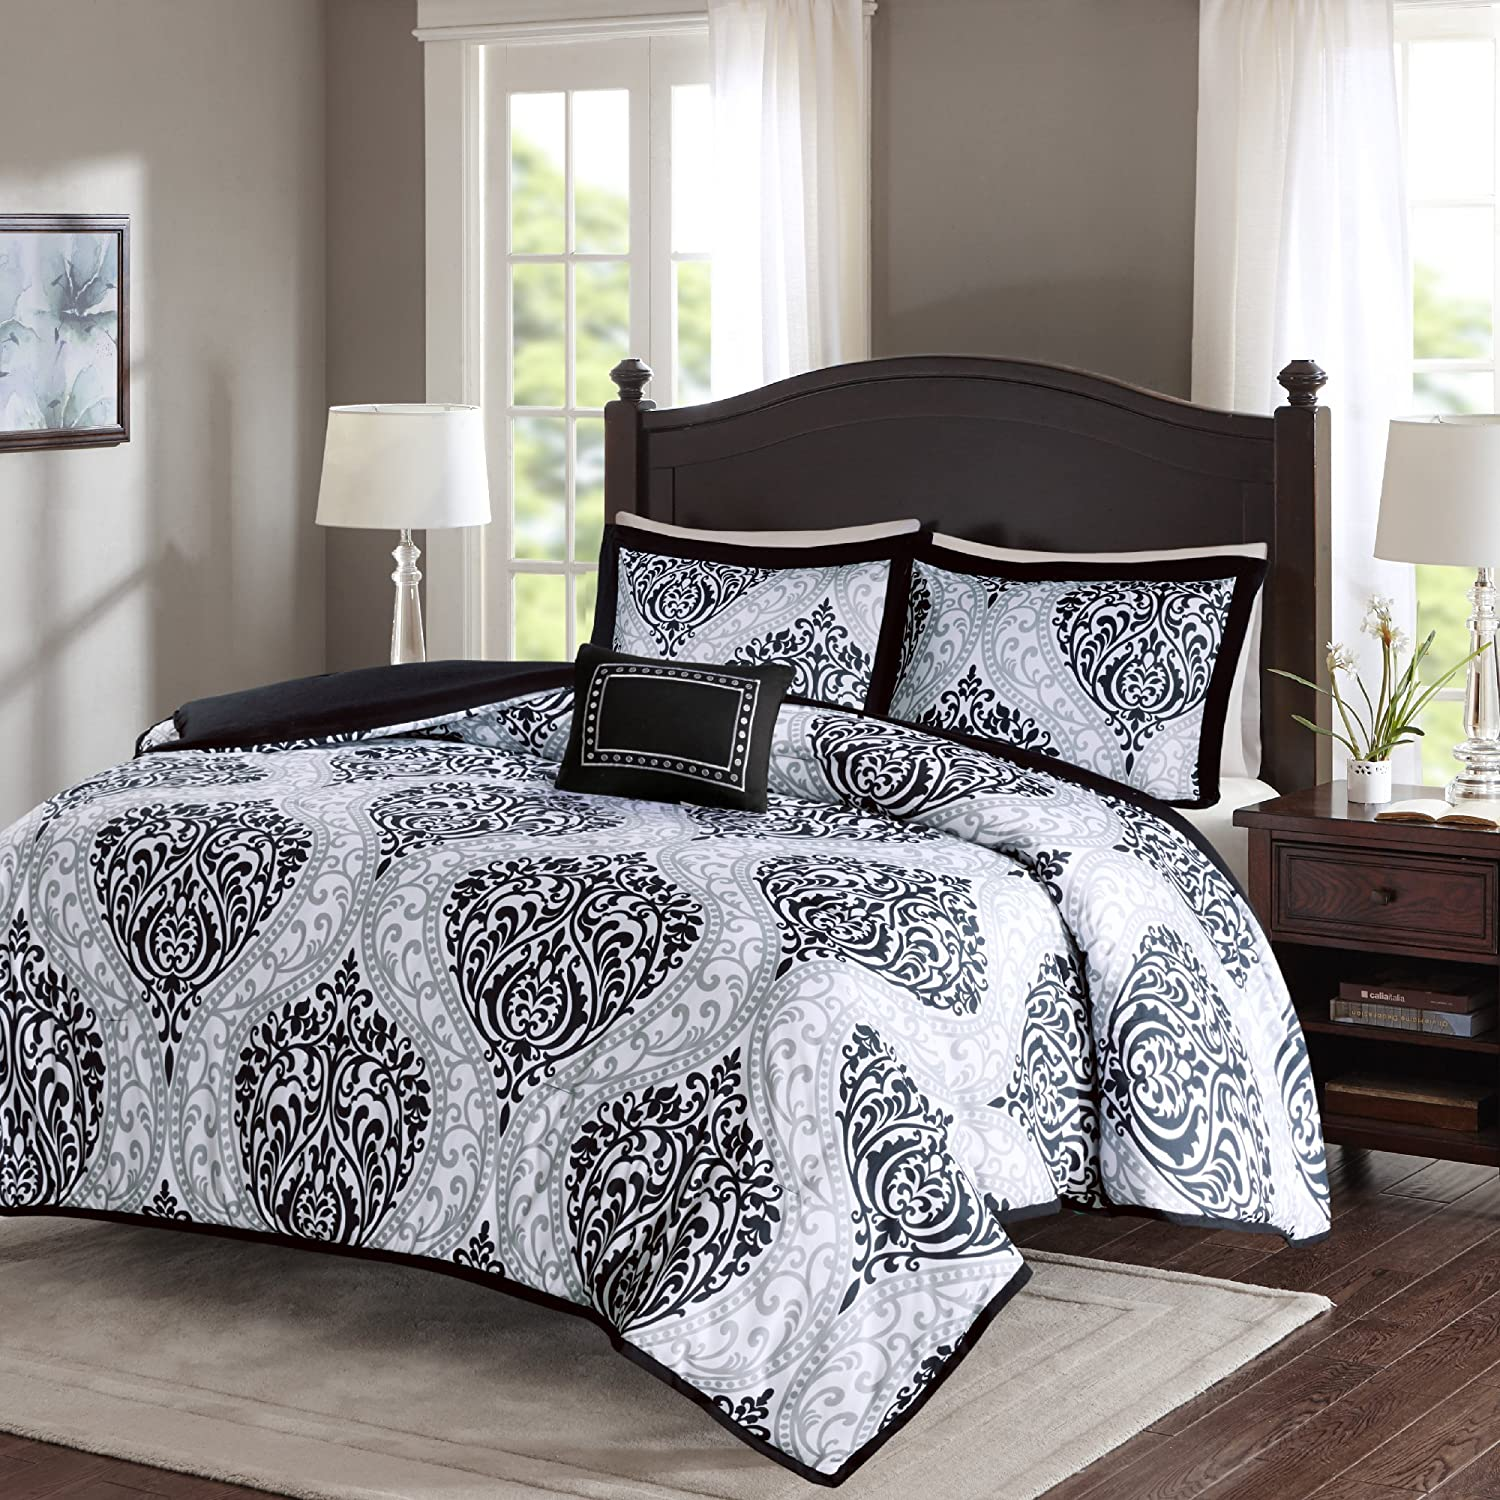 Comfort Spaces - Coco Comforter Set - 4 Piece - Black and White - Printed Damask Pattern